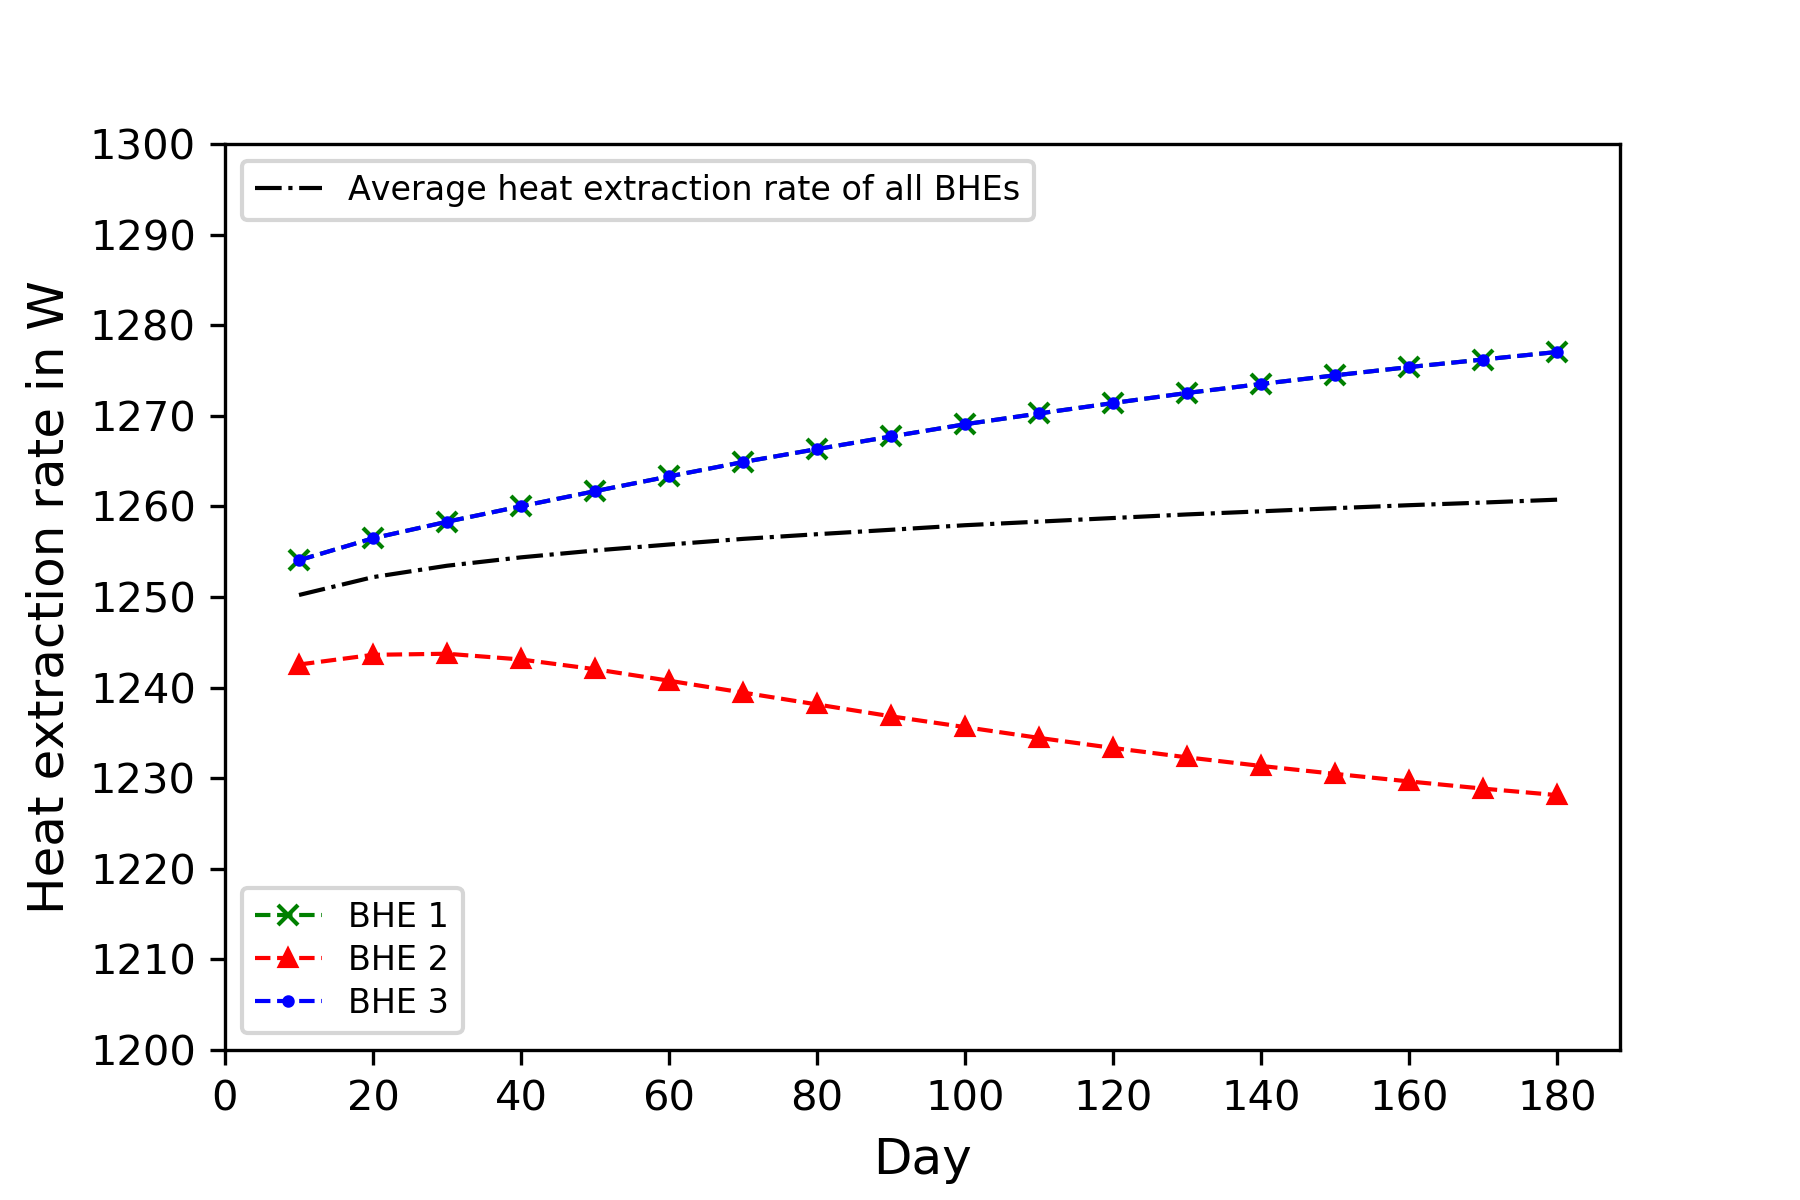 web/content/docs/benchmarks/heat-transport-bhe/3D_3BHEs_array_figures/Heat_extraction_rate_closedloop.png